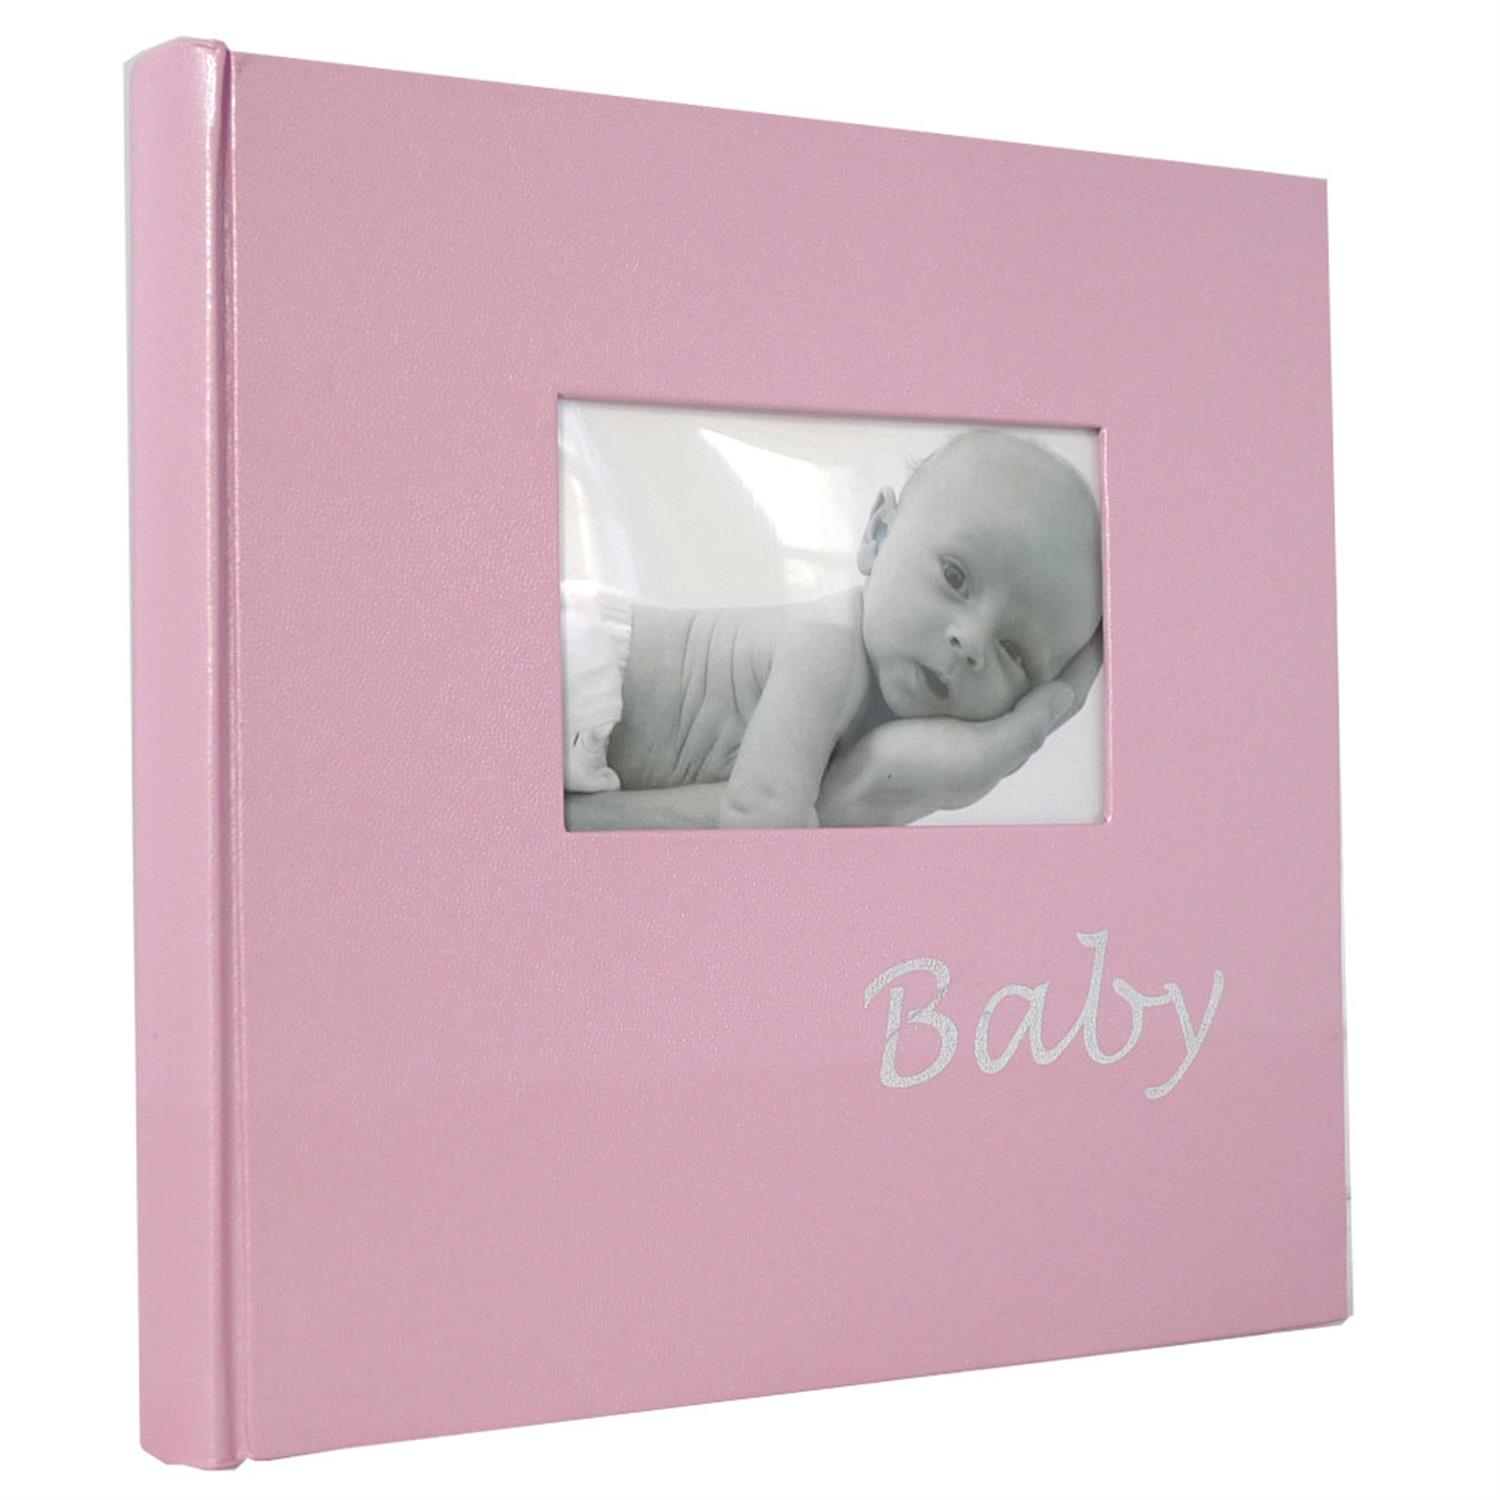 Dorr Baby Pink Traditional Photo Album - 60 Sides